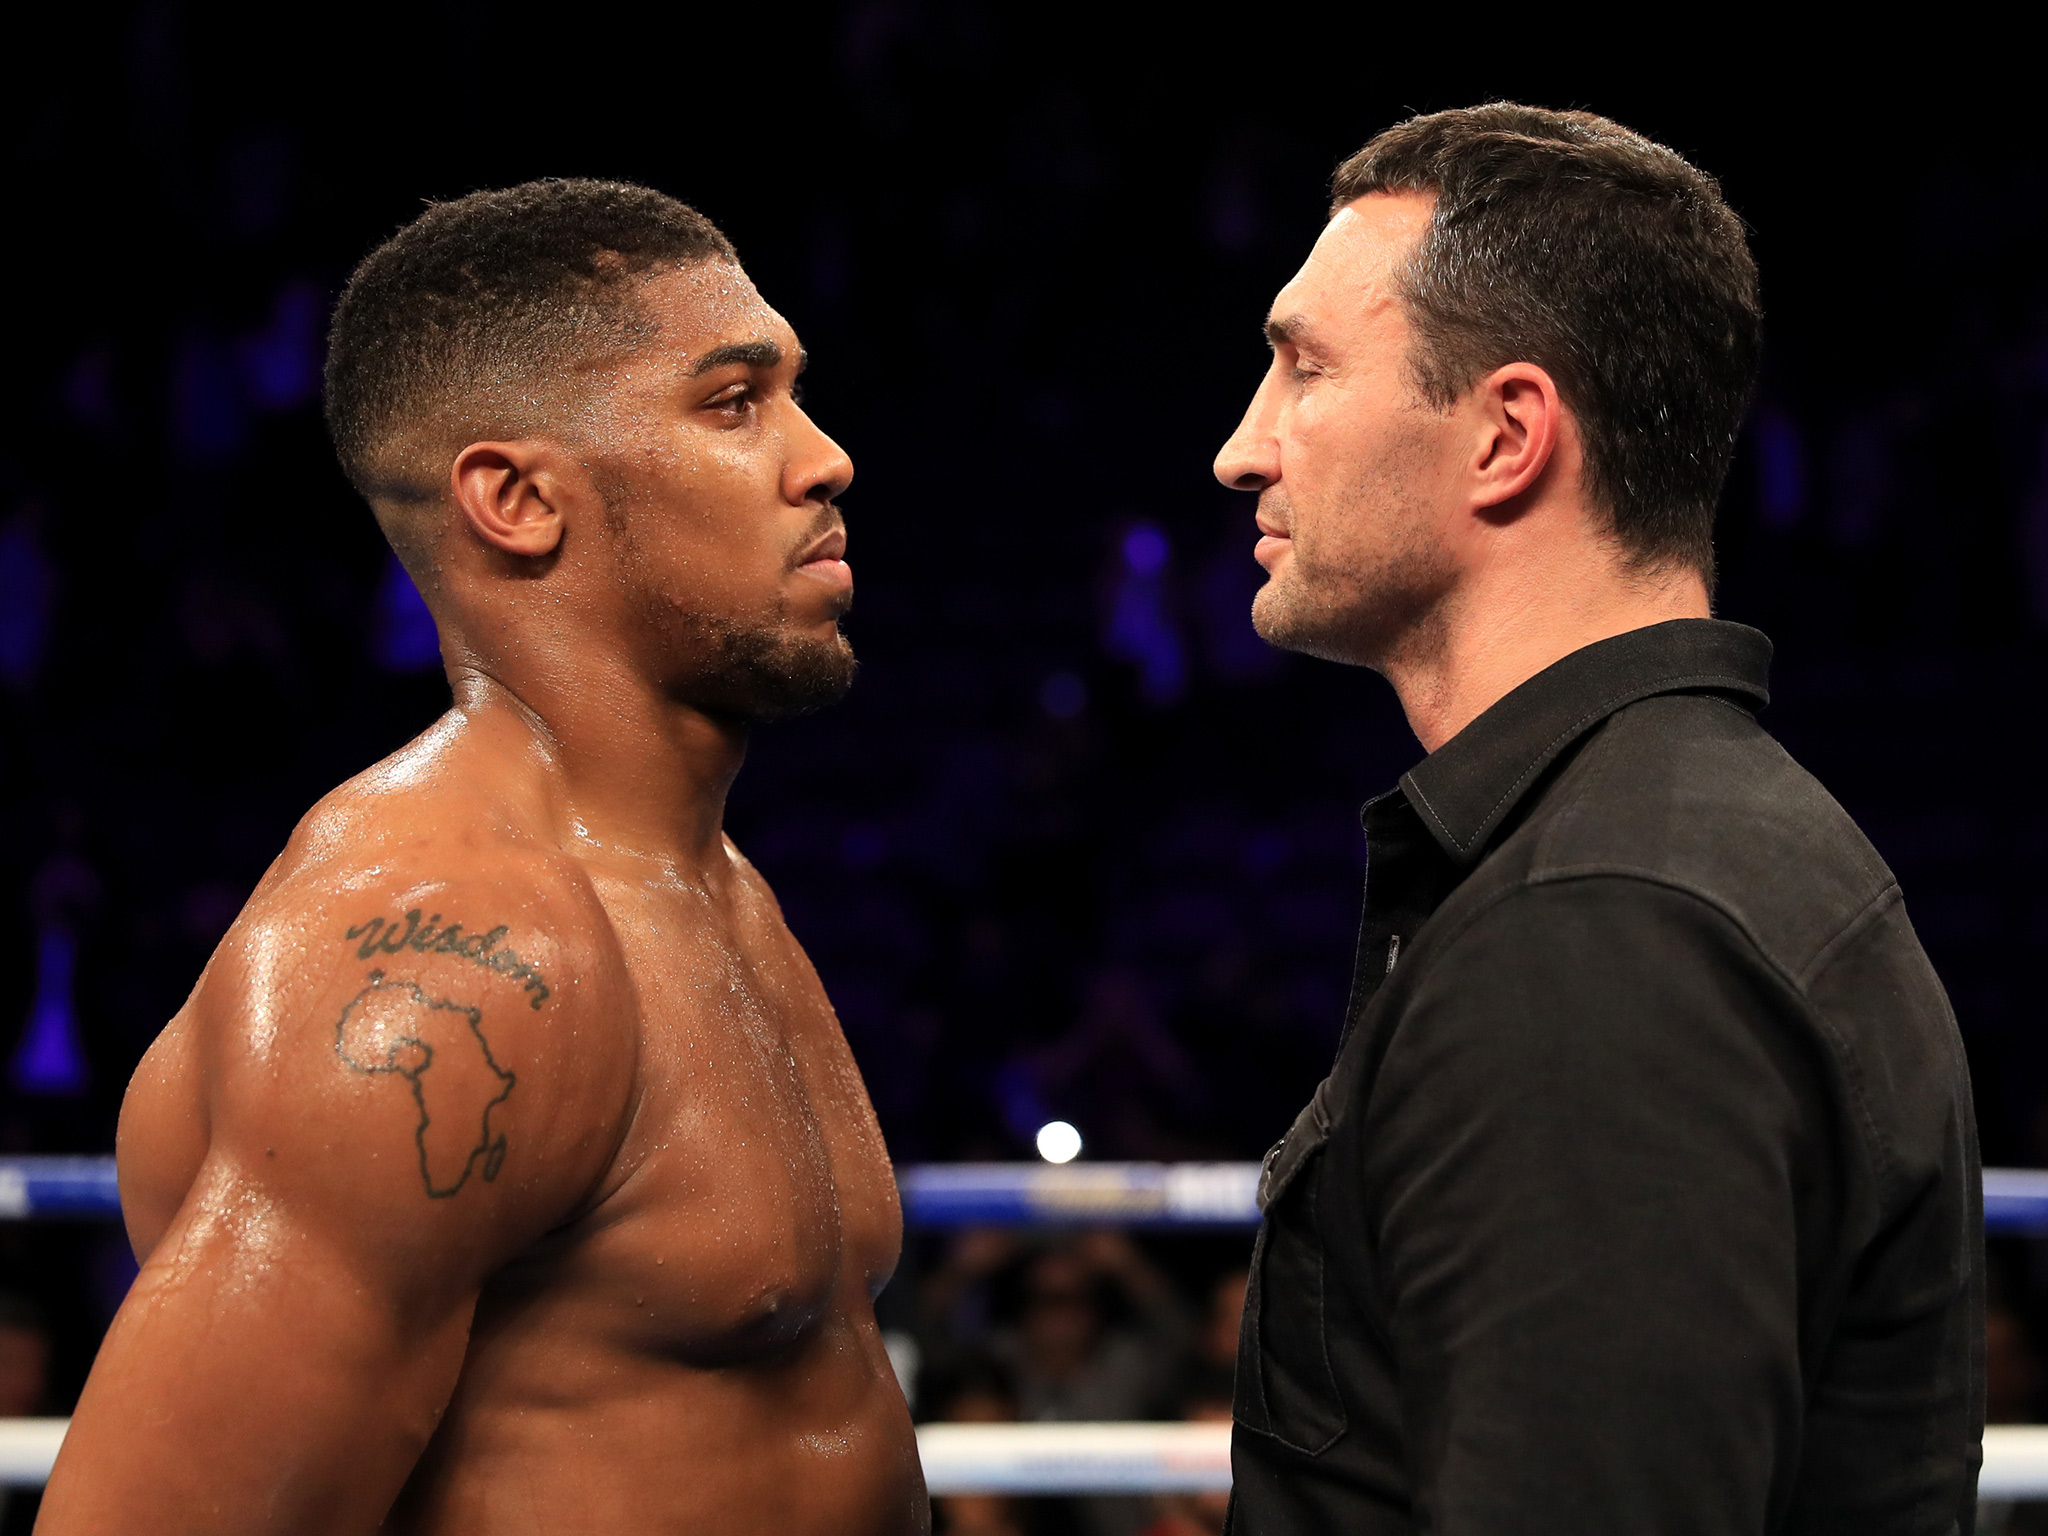 Joshua vs Klitschko: Anthony Joshua will be facing Mount Everest when he meets me! says Wladimir Klitschko